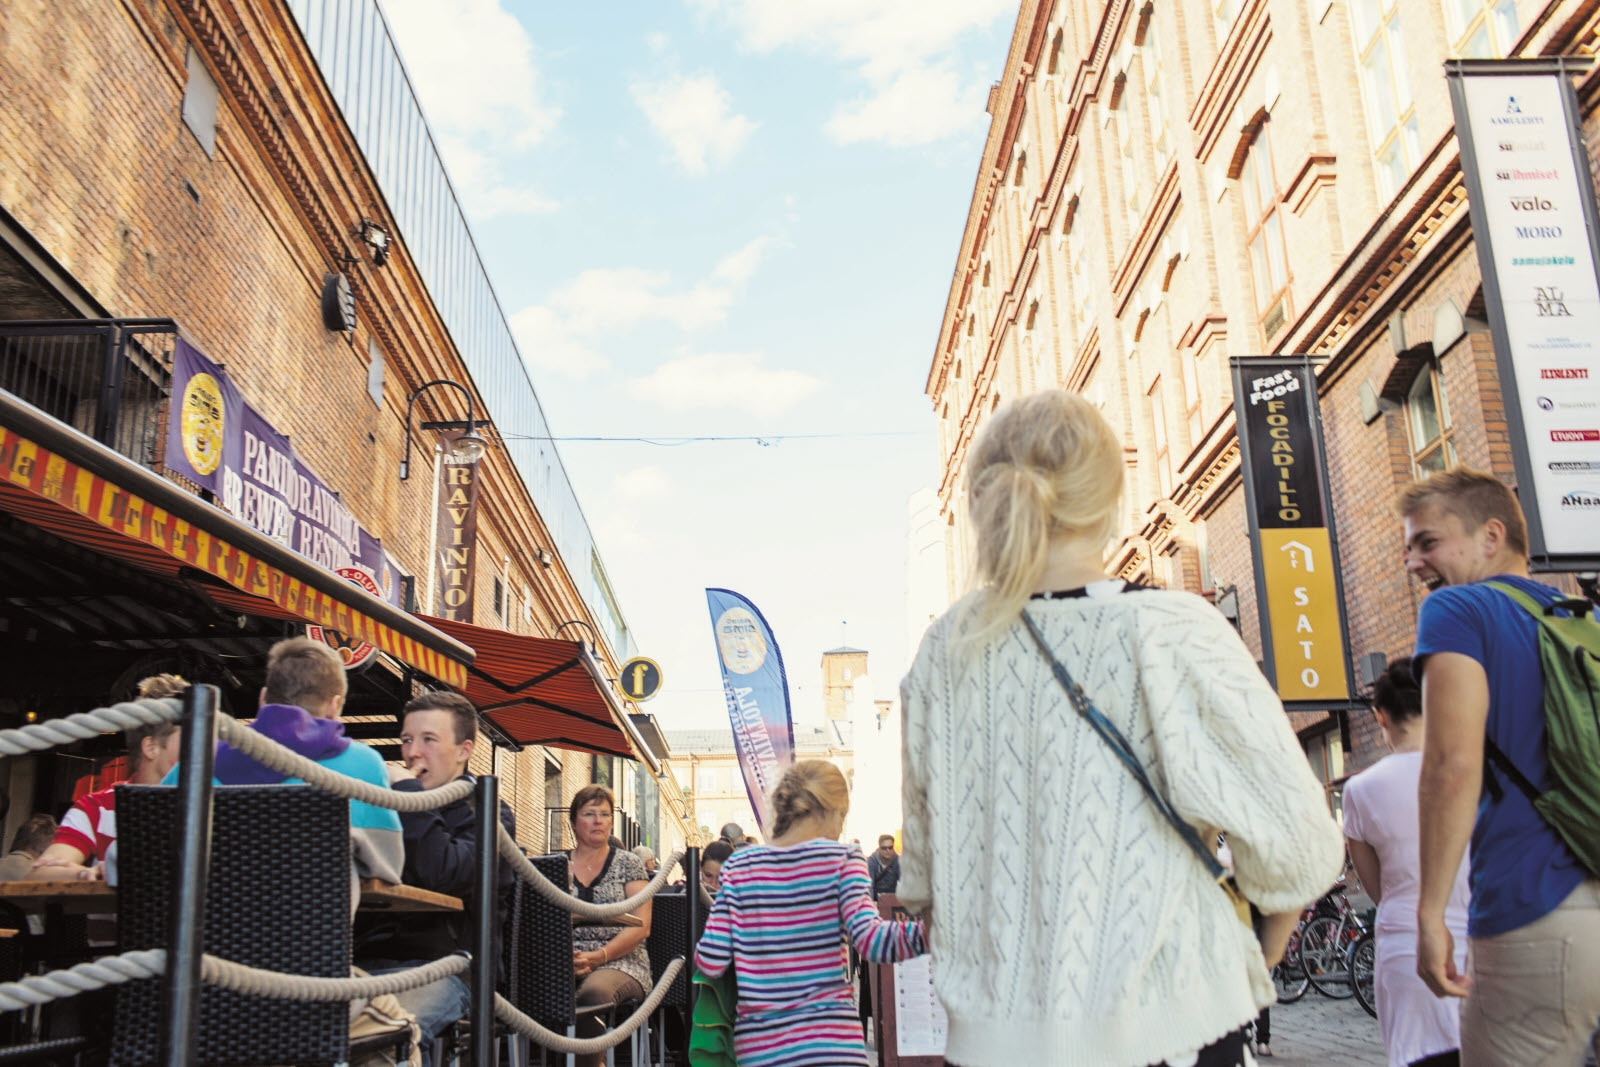 tampere-finlaysoin-busy-summer-day.jpg